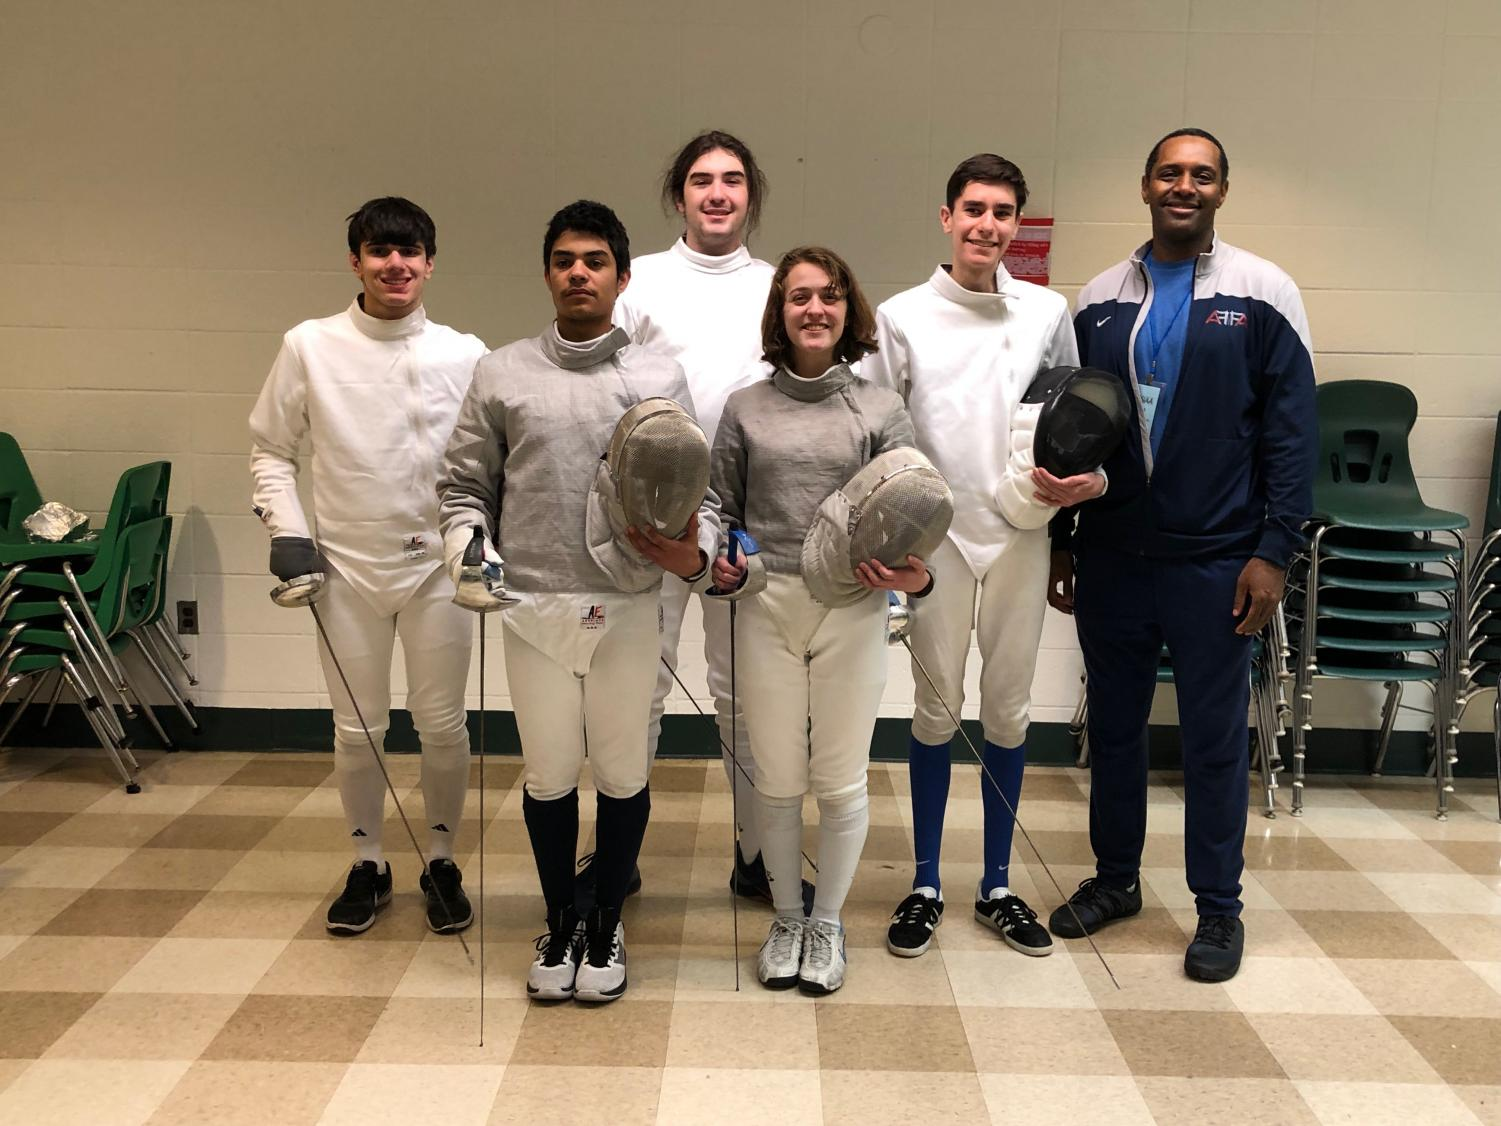 Members of the Fencing Club at a meet earlier this year.